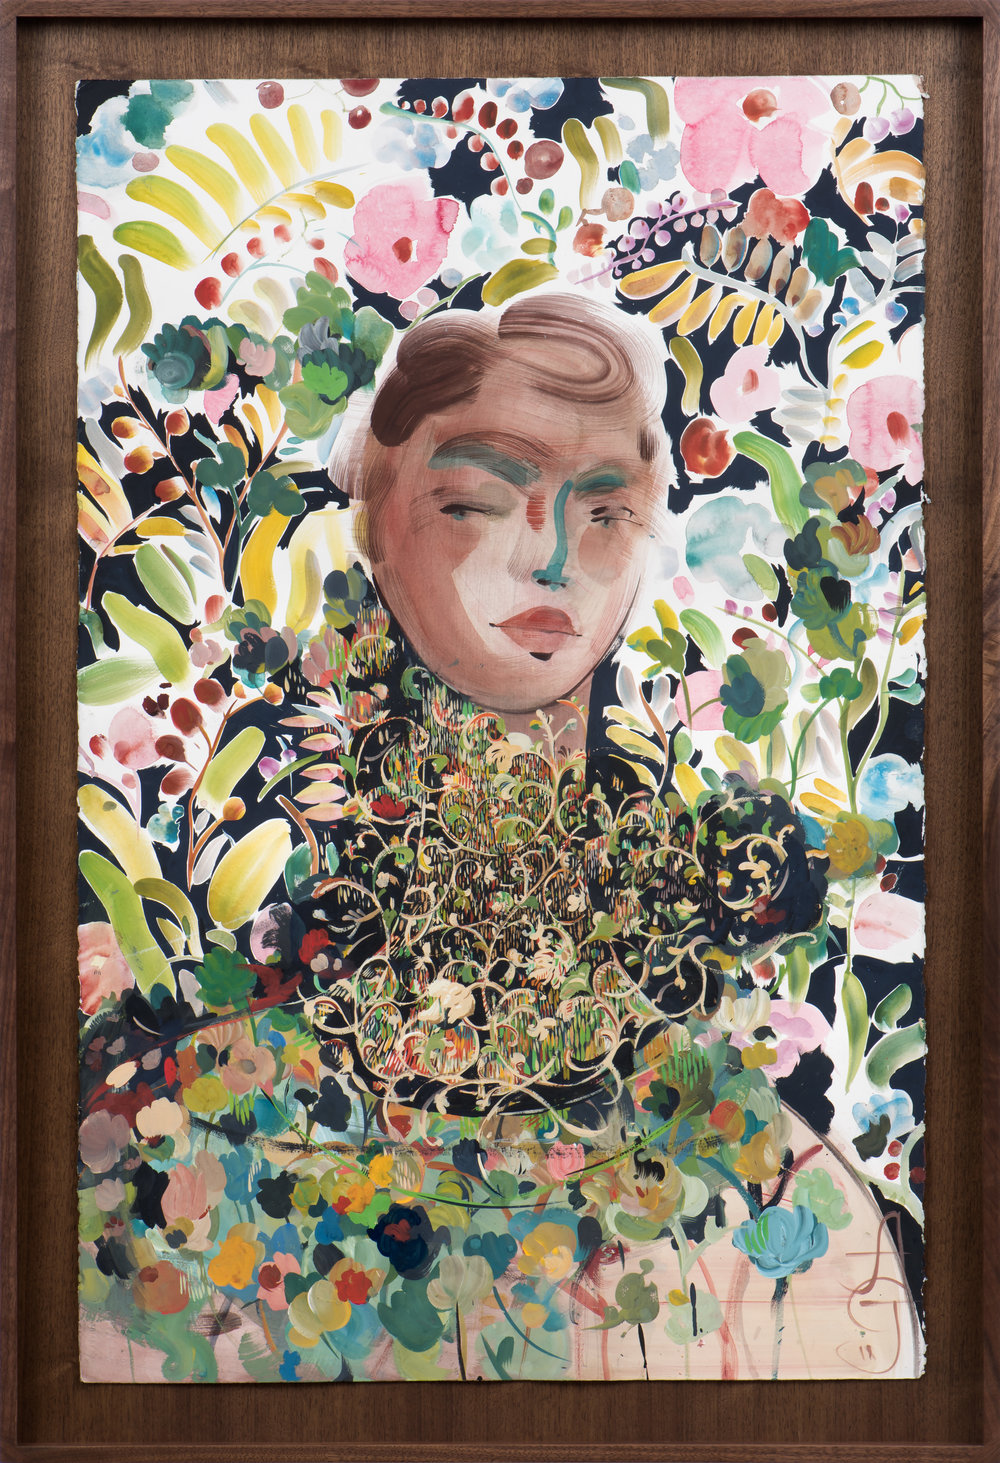 Nino , 2018 Gouache and watercolor on paper 40 x 26 1/2 inches